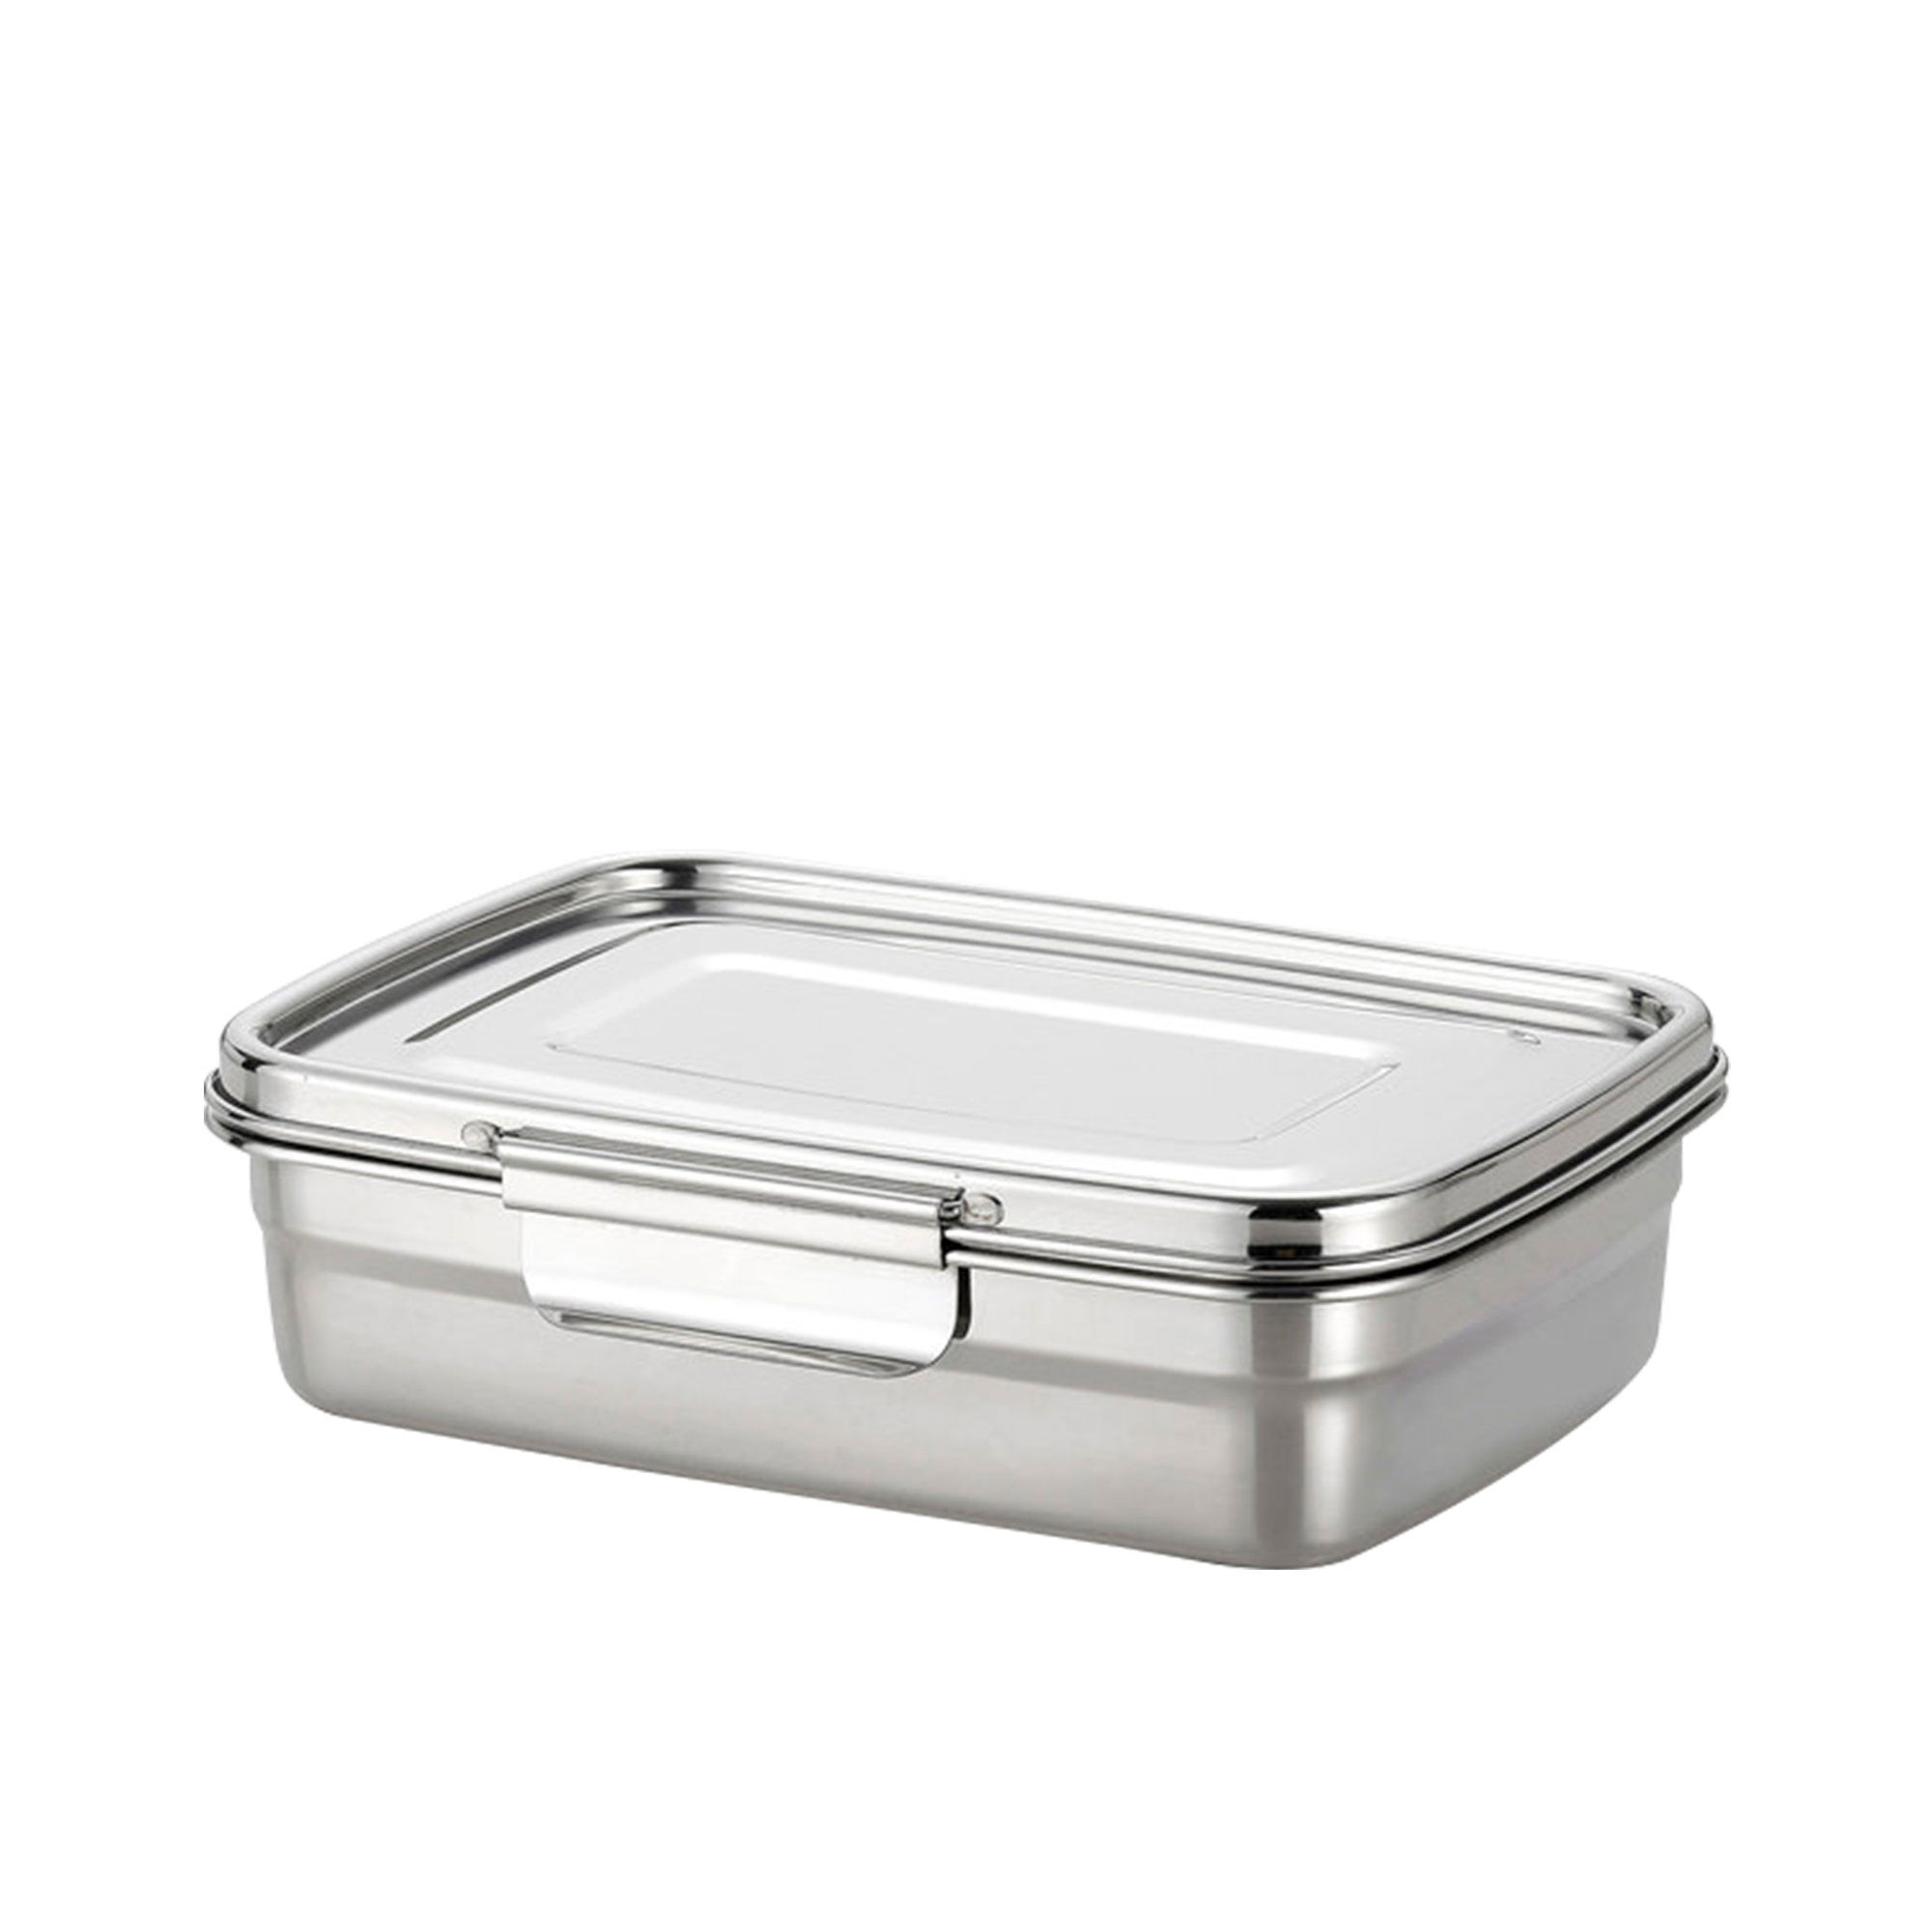 Avanti Dry Cell Stainless Steel Food Container 1.9L